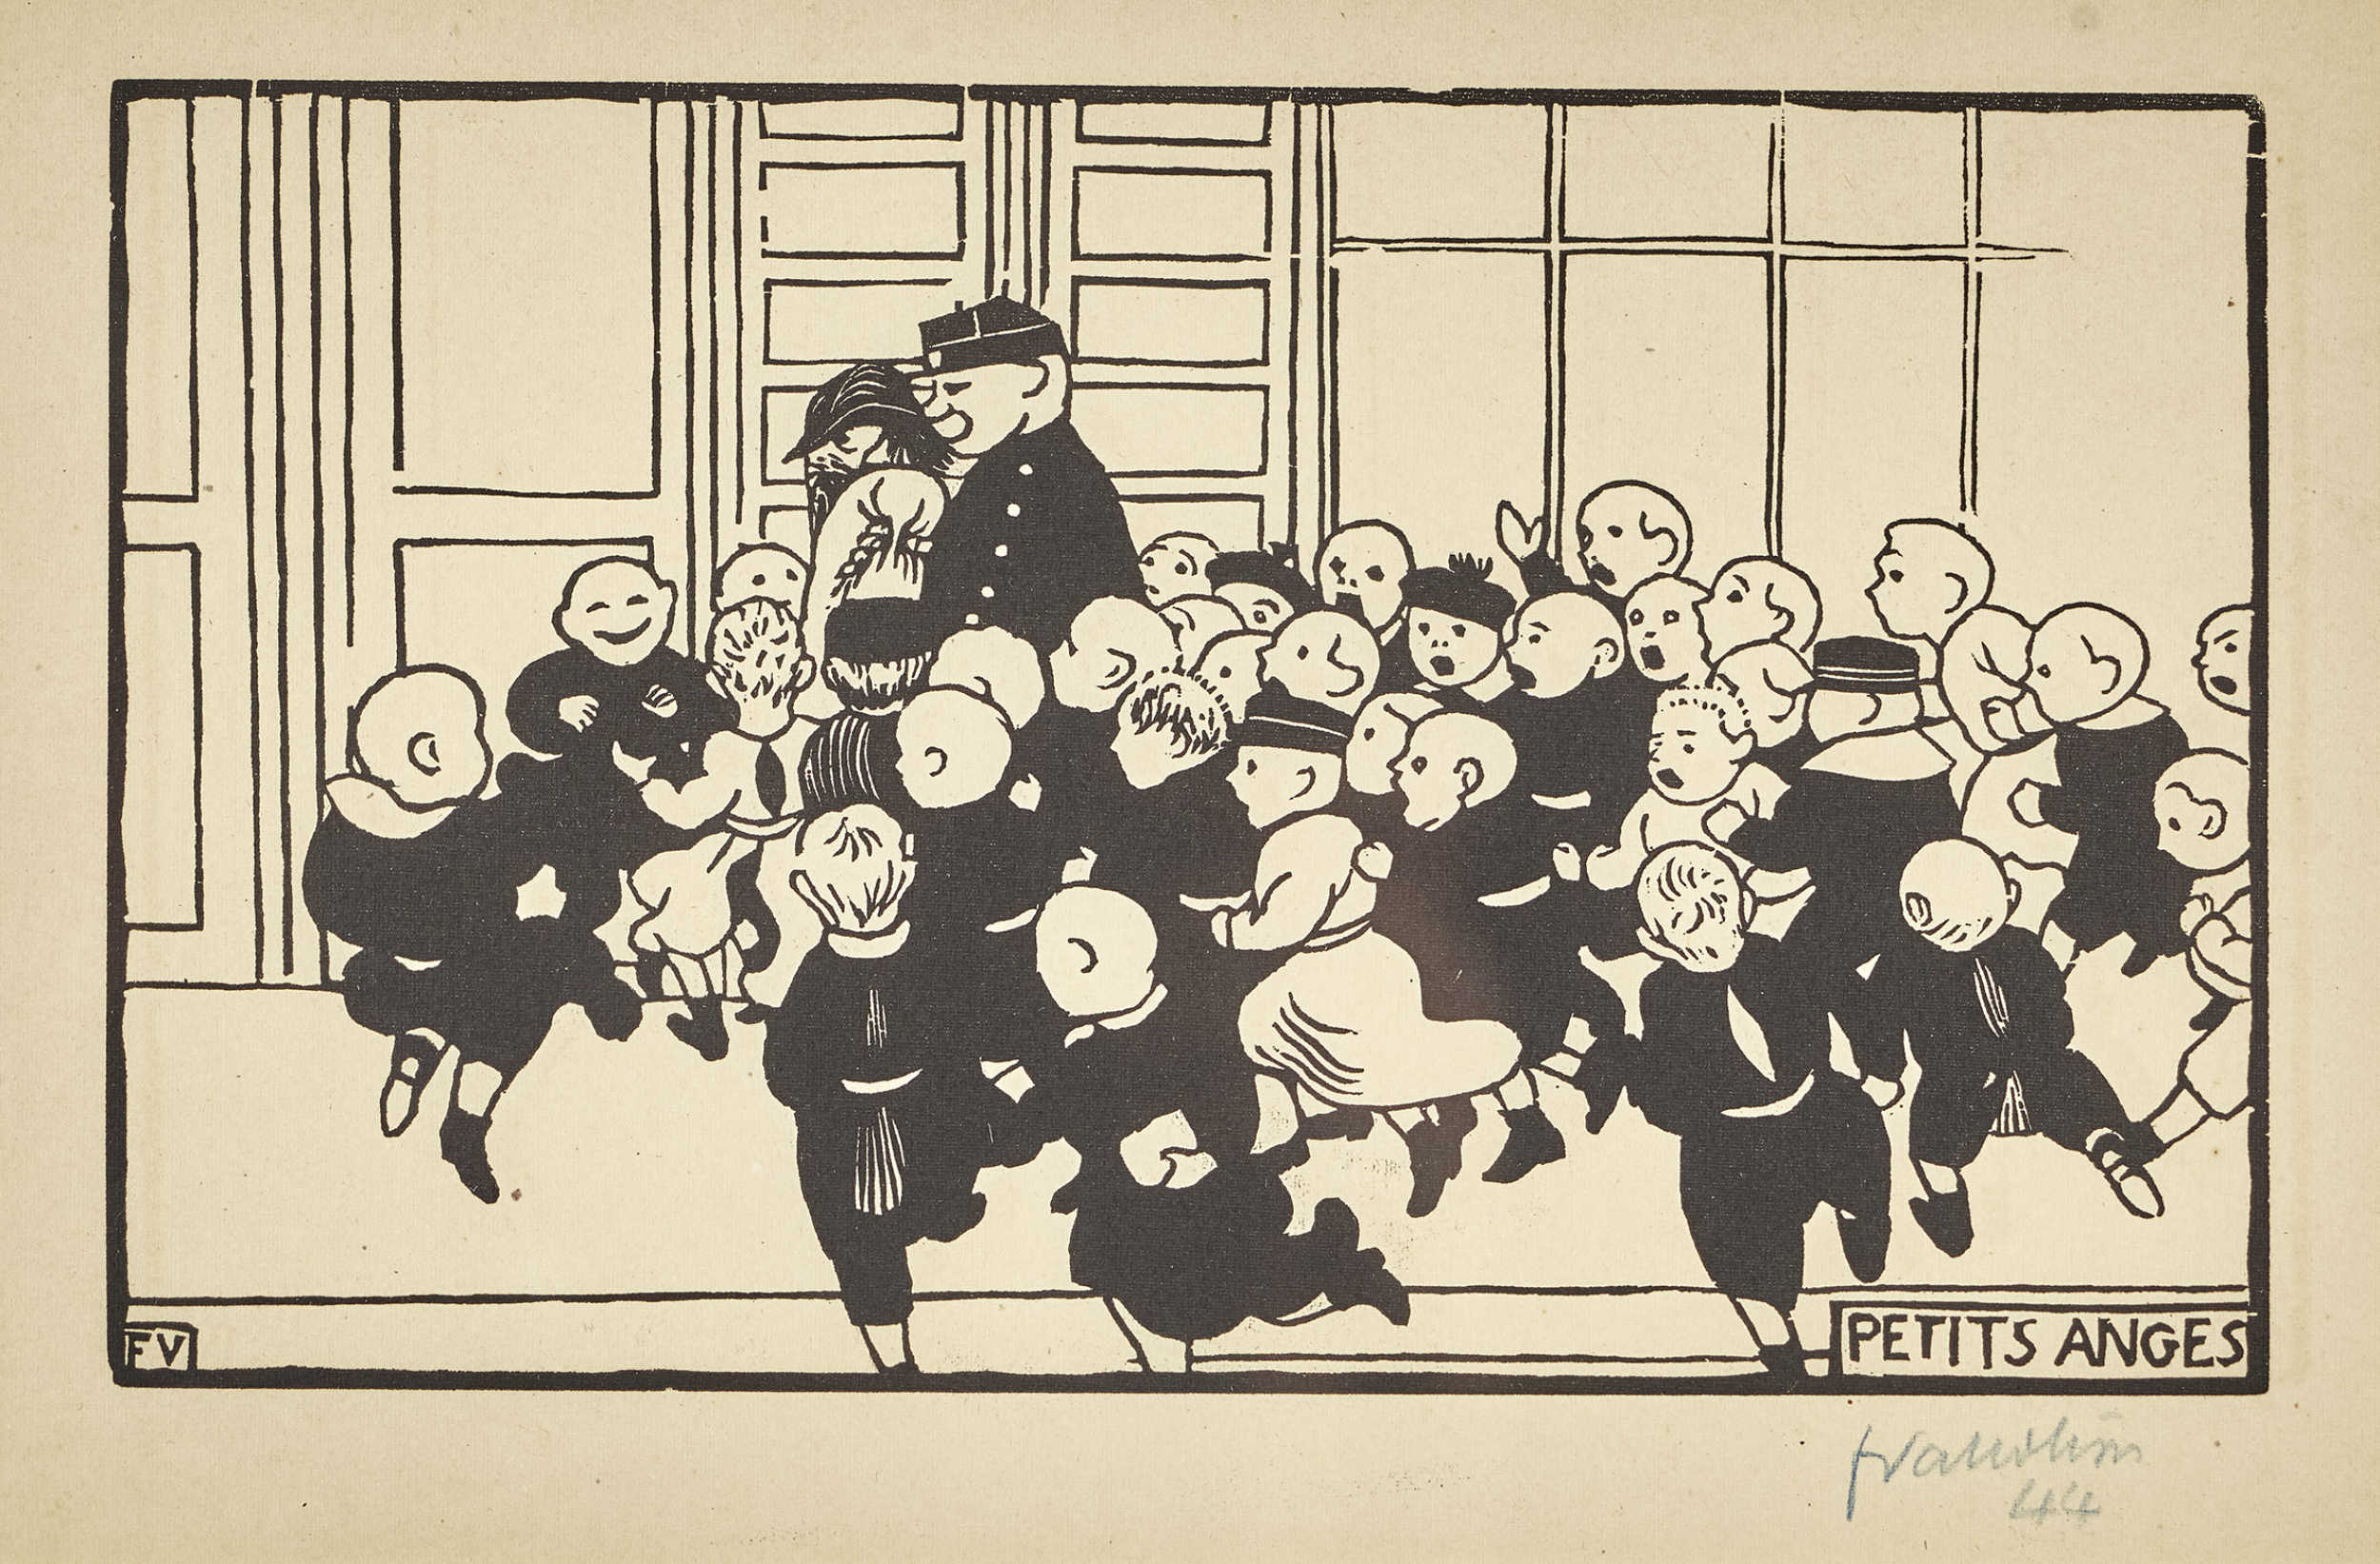 Lot 43 - VALLOTTON, FÉLIXLausanne 1865 - 1925 Neuilly-sur-SeinePetits anges.Holzschnitt,im Stock mgr. u.l.,